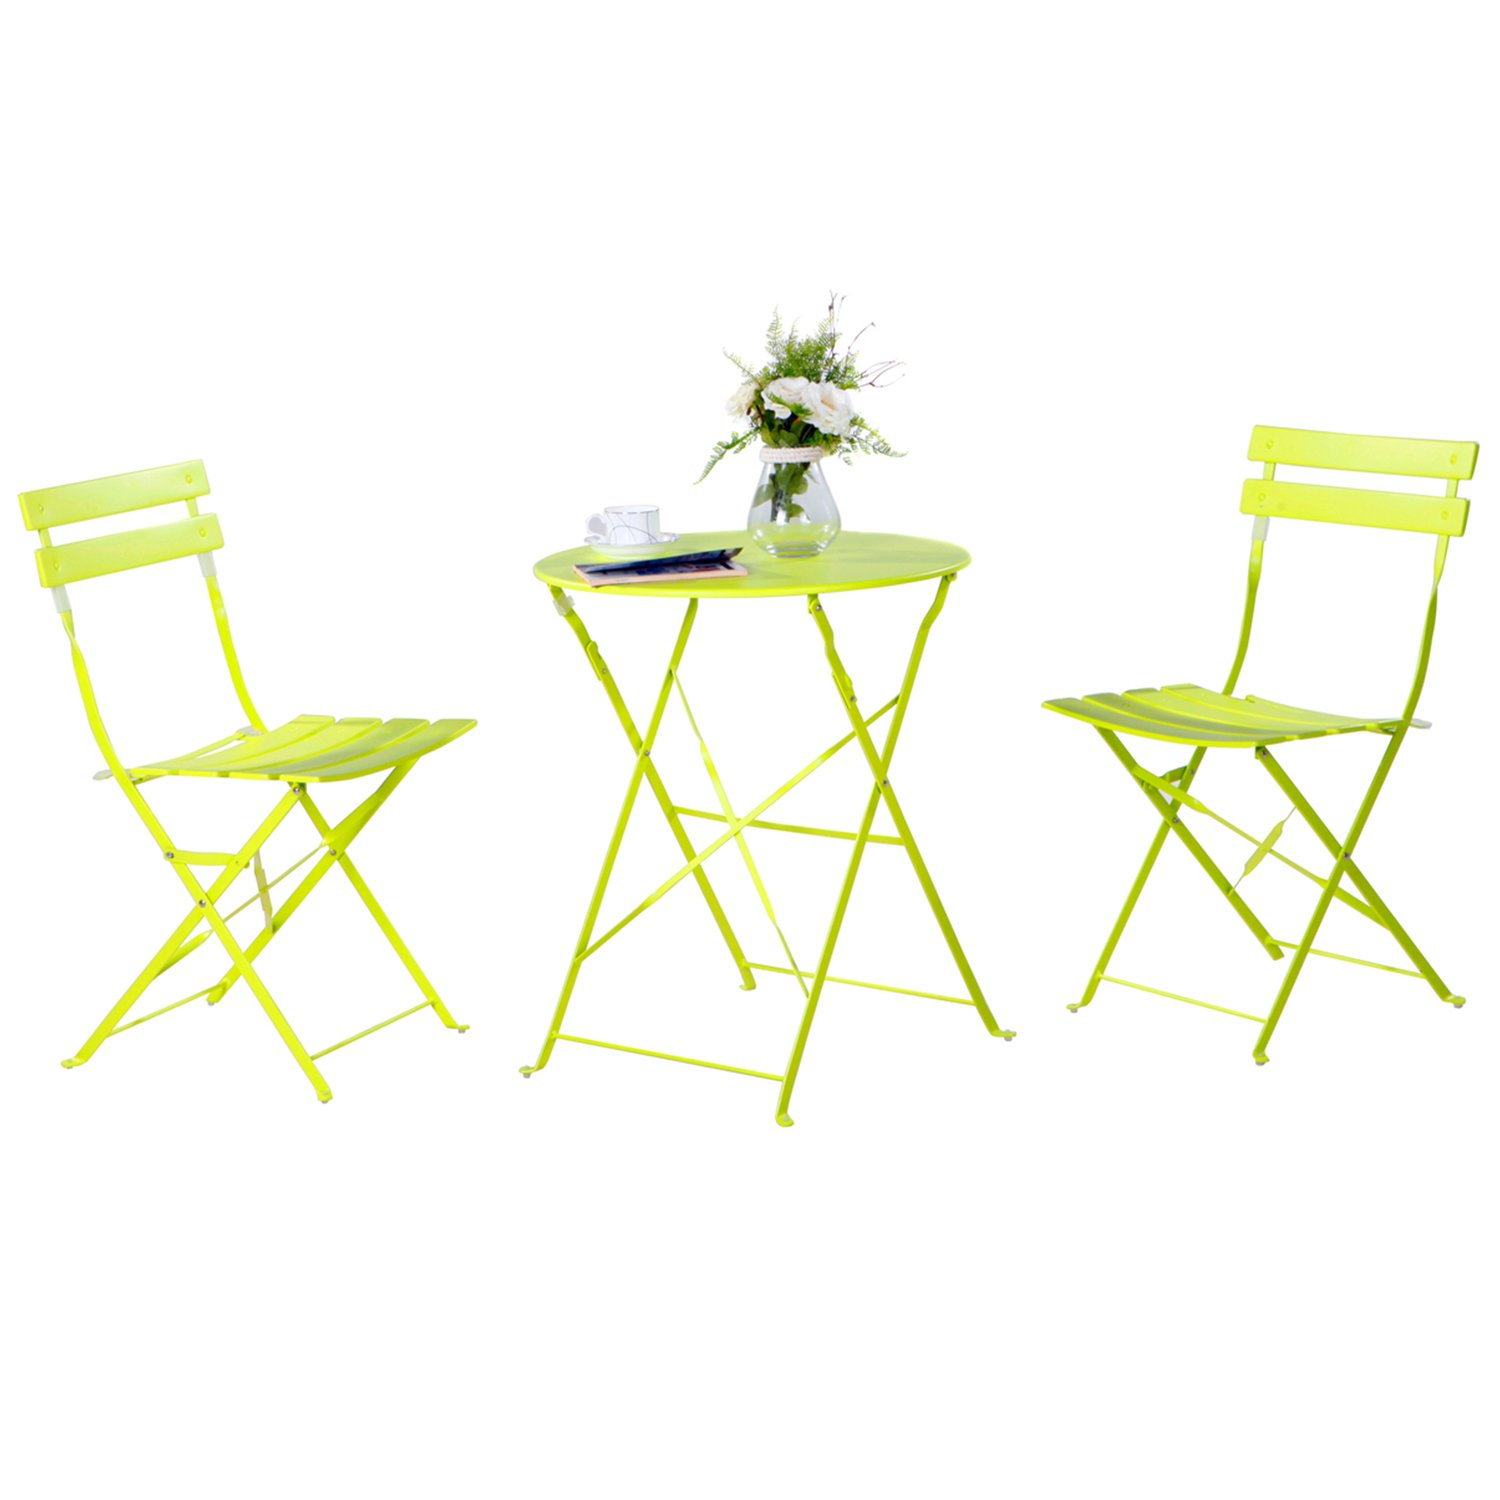 Grand patio 3-Pack Sling Glider Folding Steel 2 Chairs Round Table Indoor Corner Sets,Vivid Green